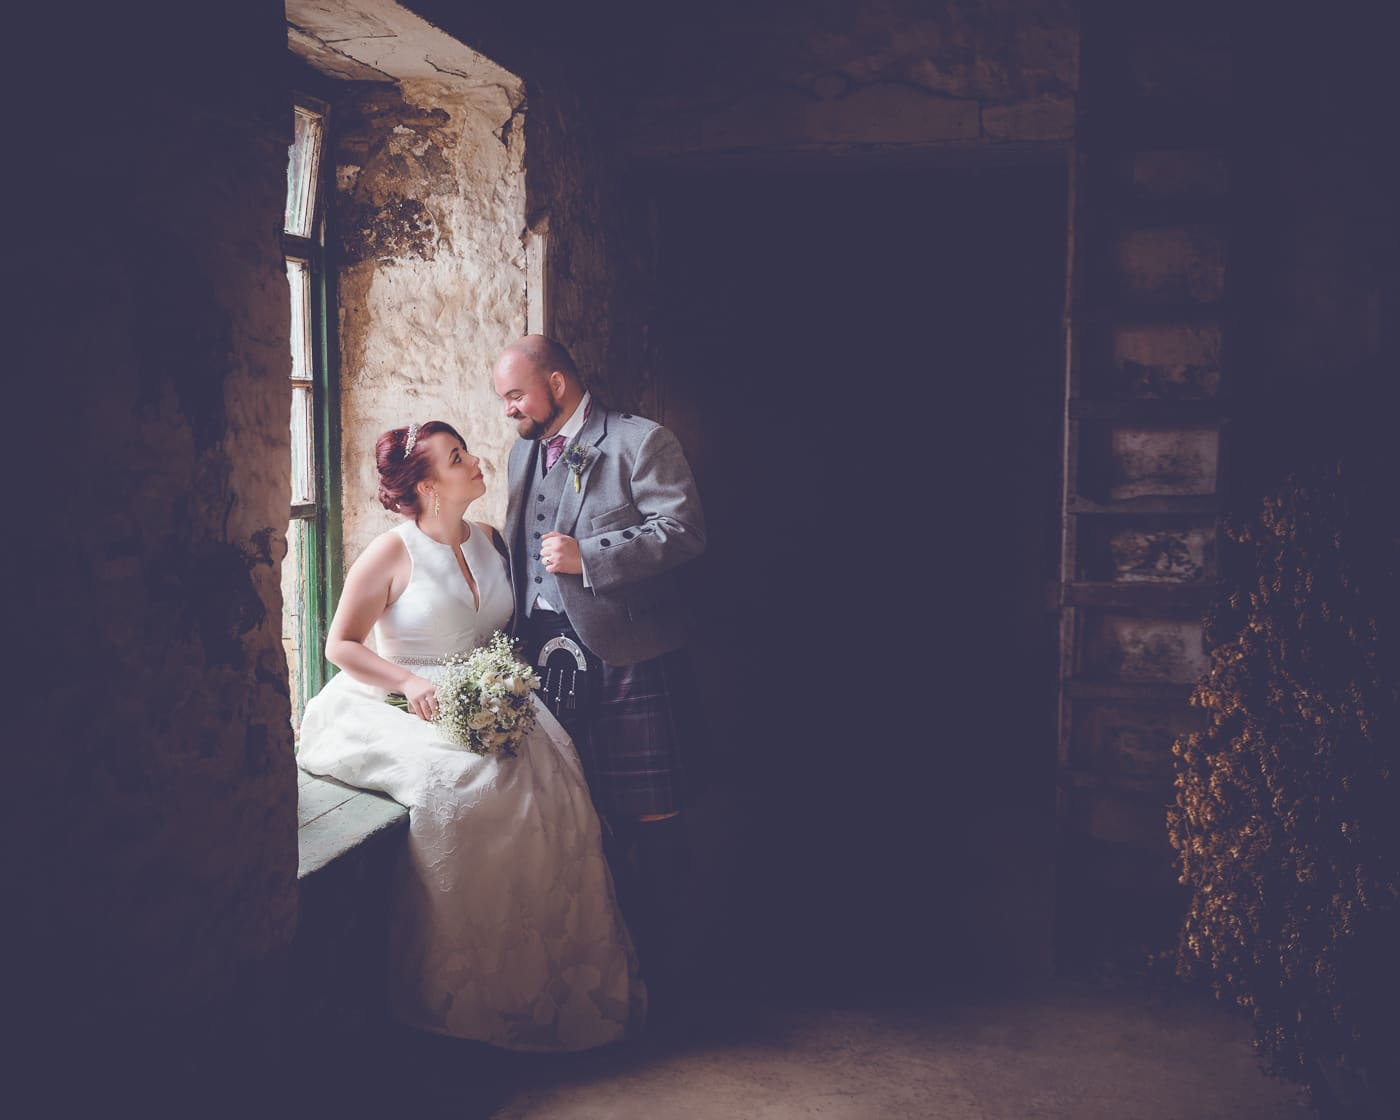 Artistic portrait of the bride and groom in one of the Pratis farm's barns